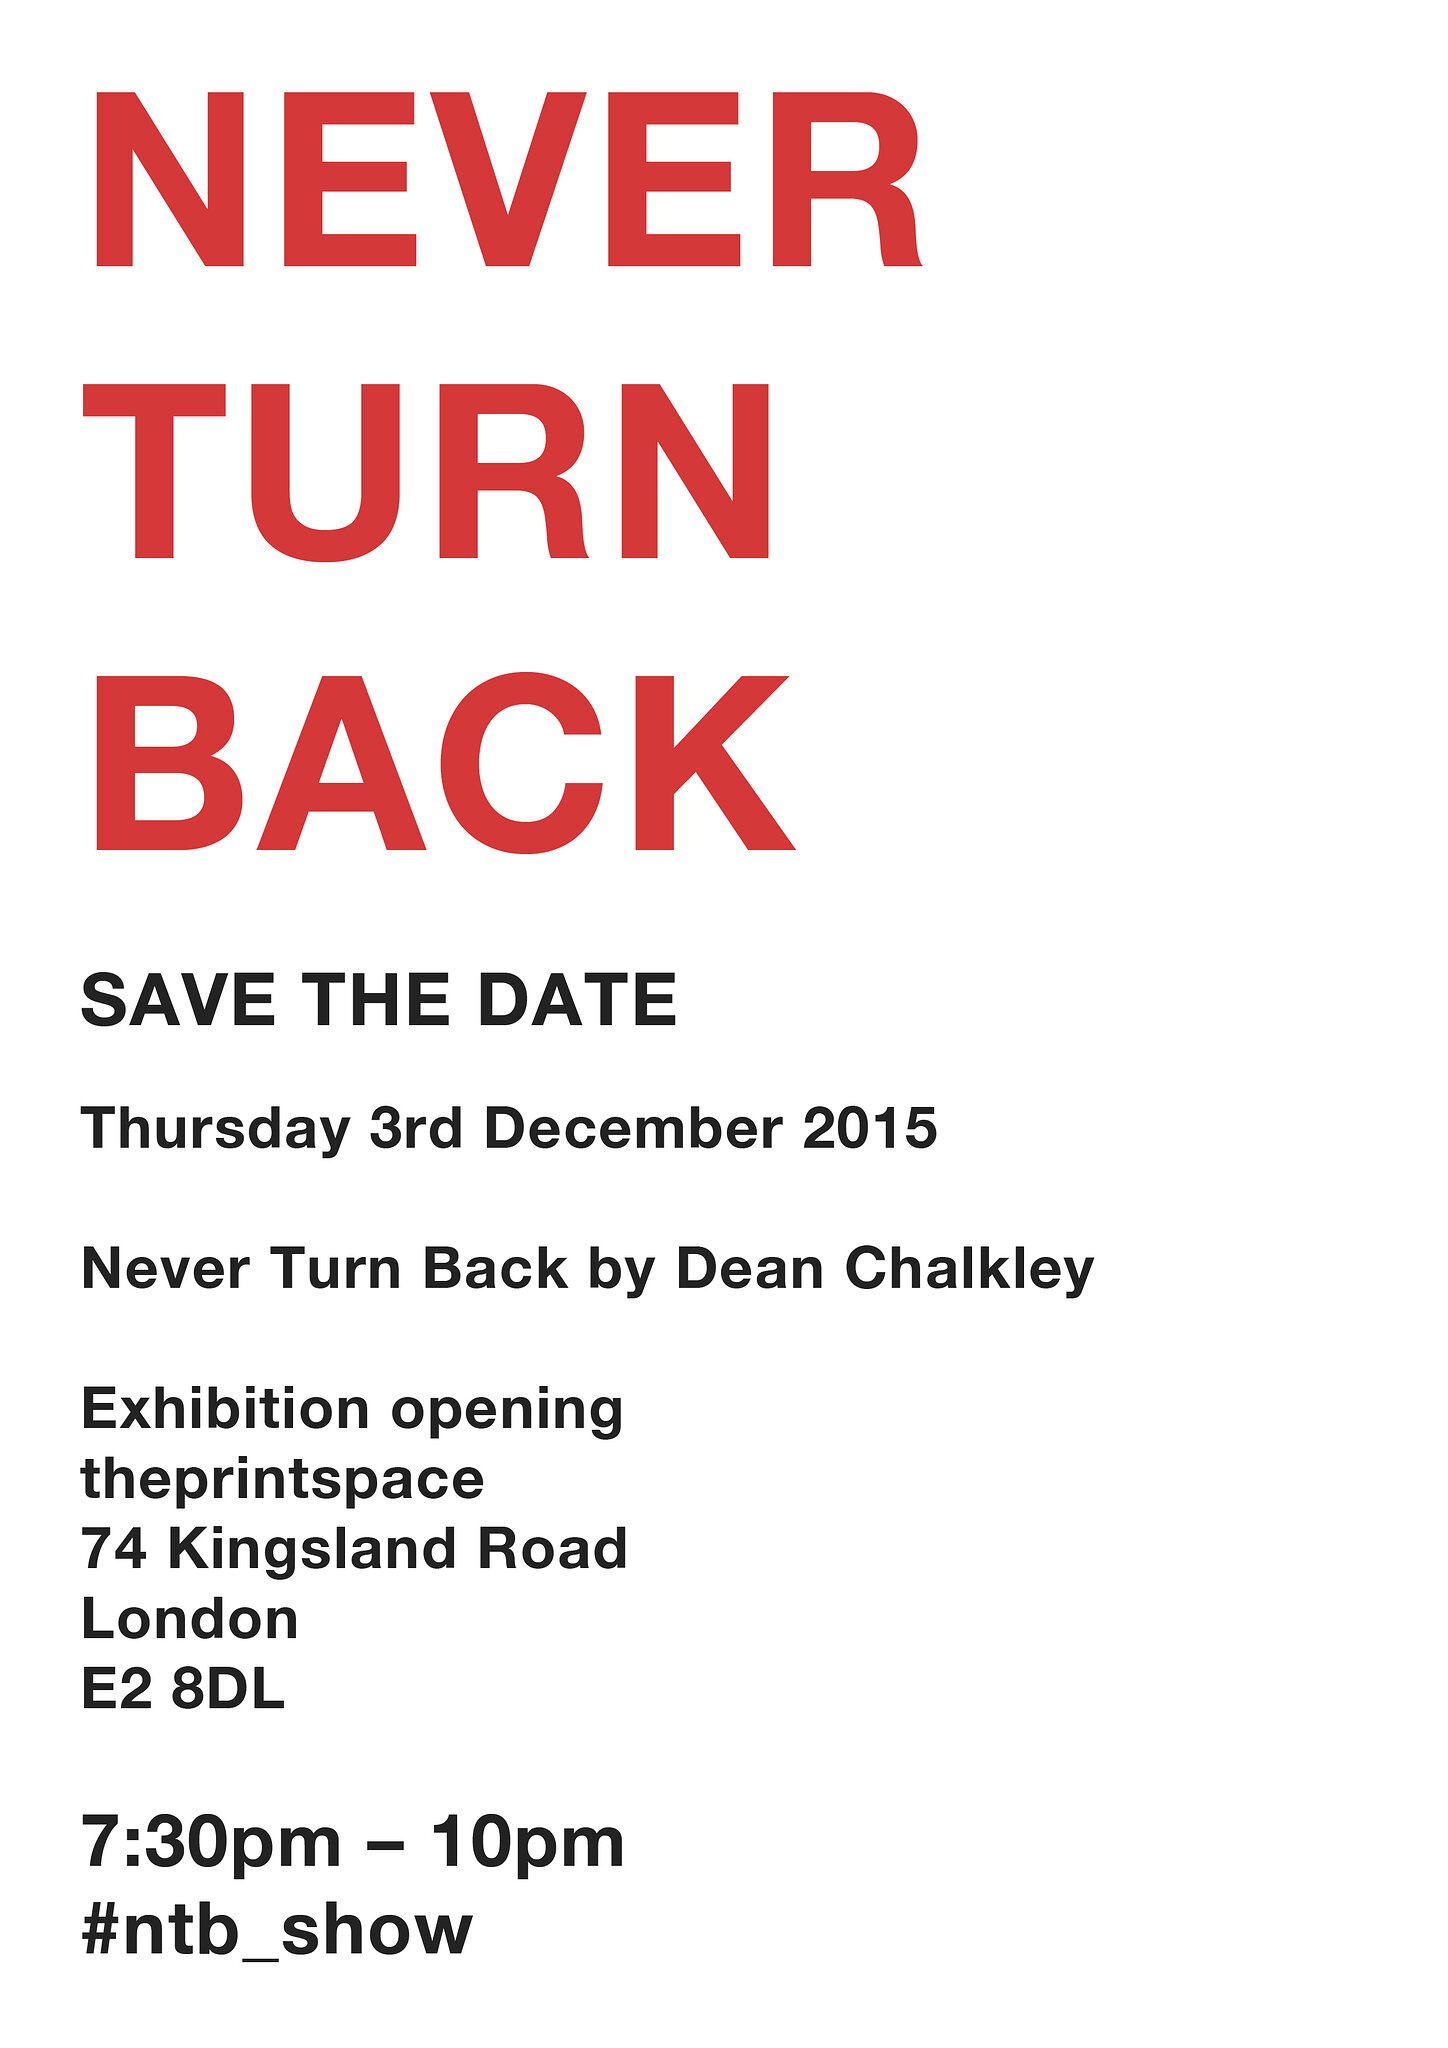 NTB Save the Date London